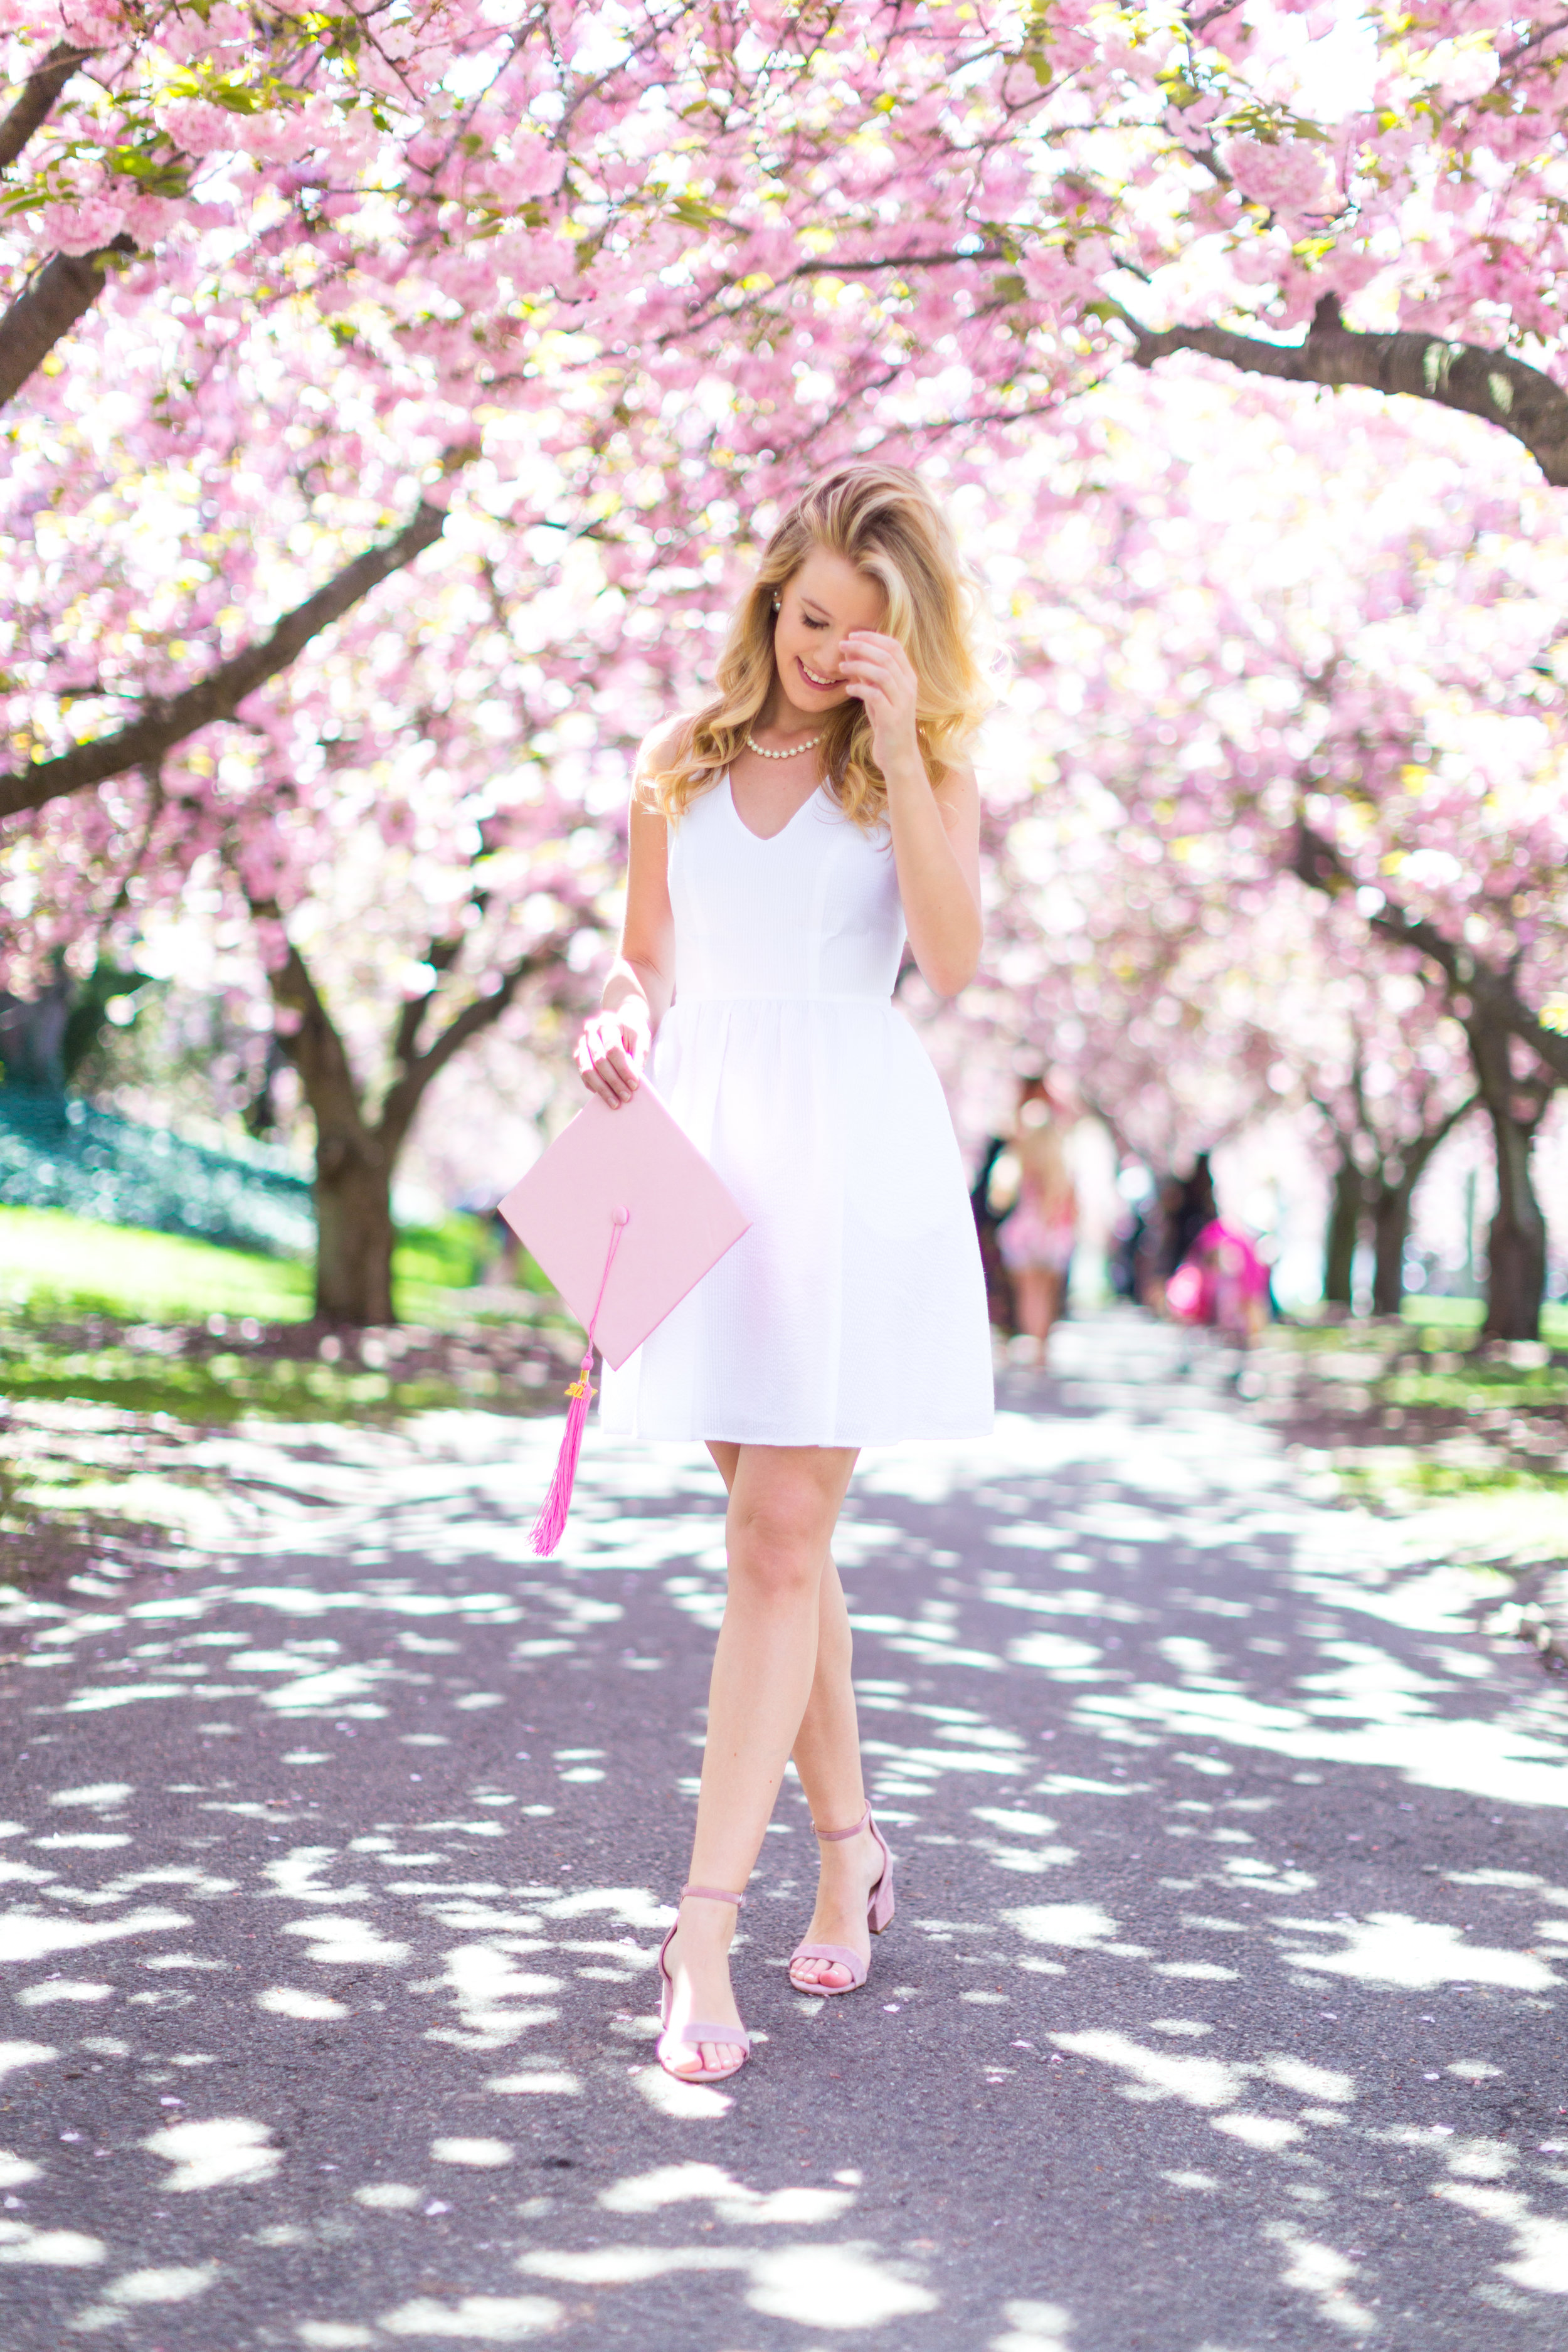 White Graduation Dress Spring Pink Cherry Blossoms NYC-4.jpg